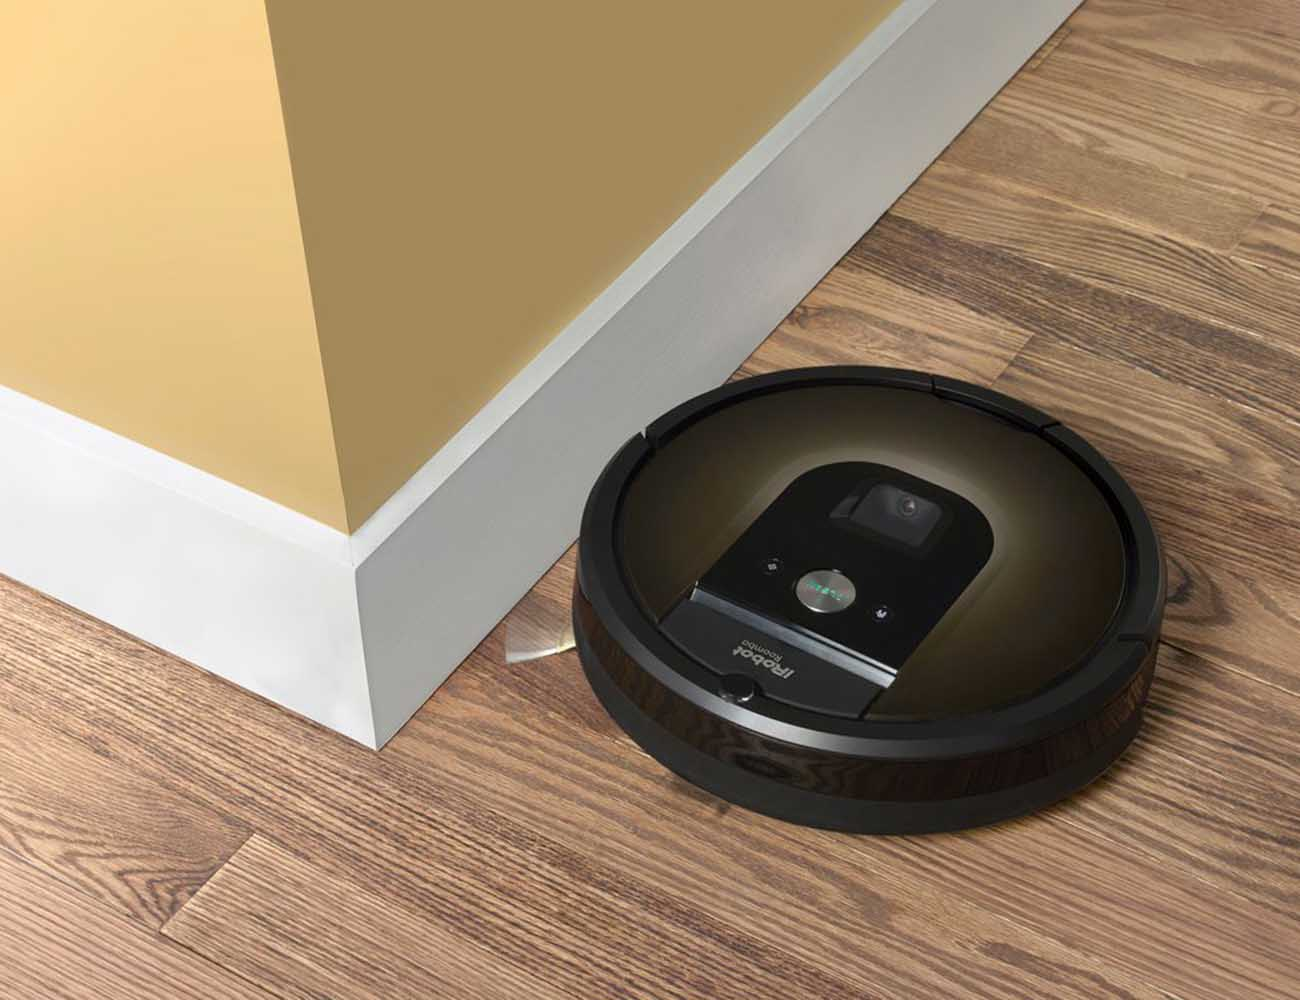 Roomba 980 Vacuum Cleaning Robot By IRobot